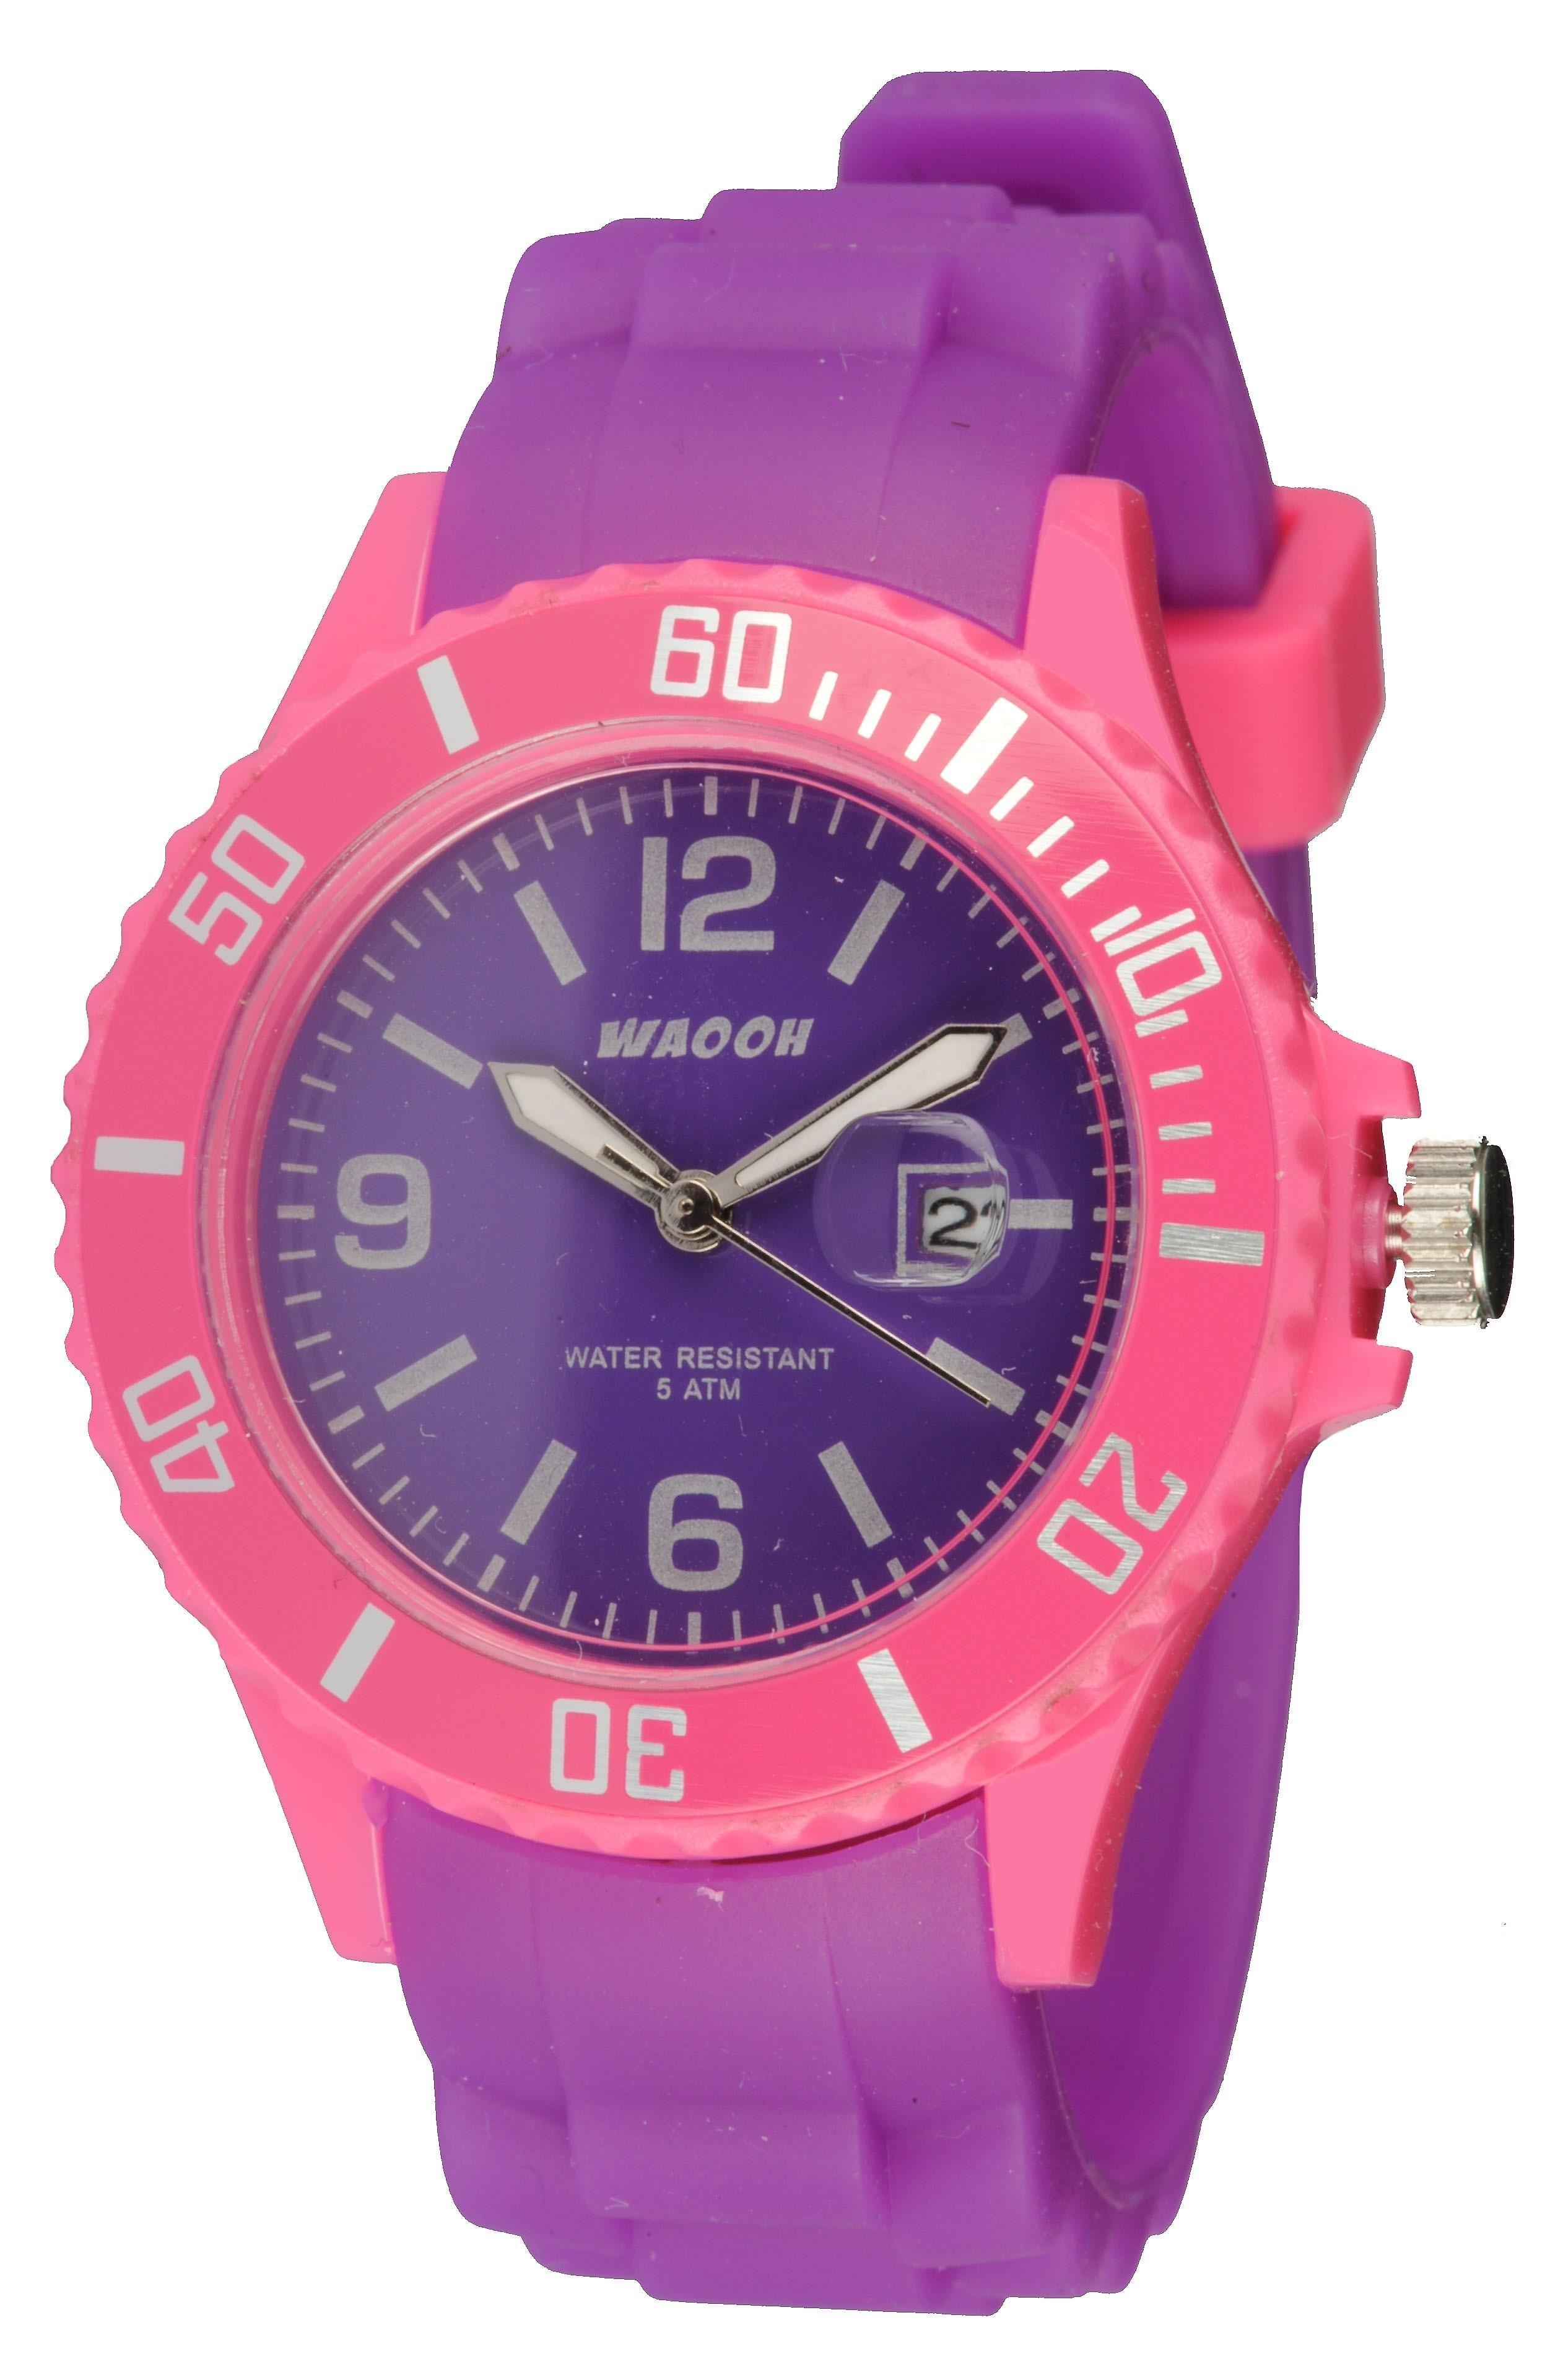 Waooh - Monaco34 Watch - Two Tone Pink &